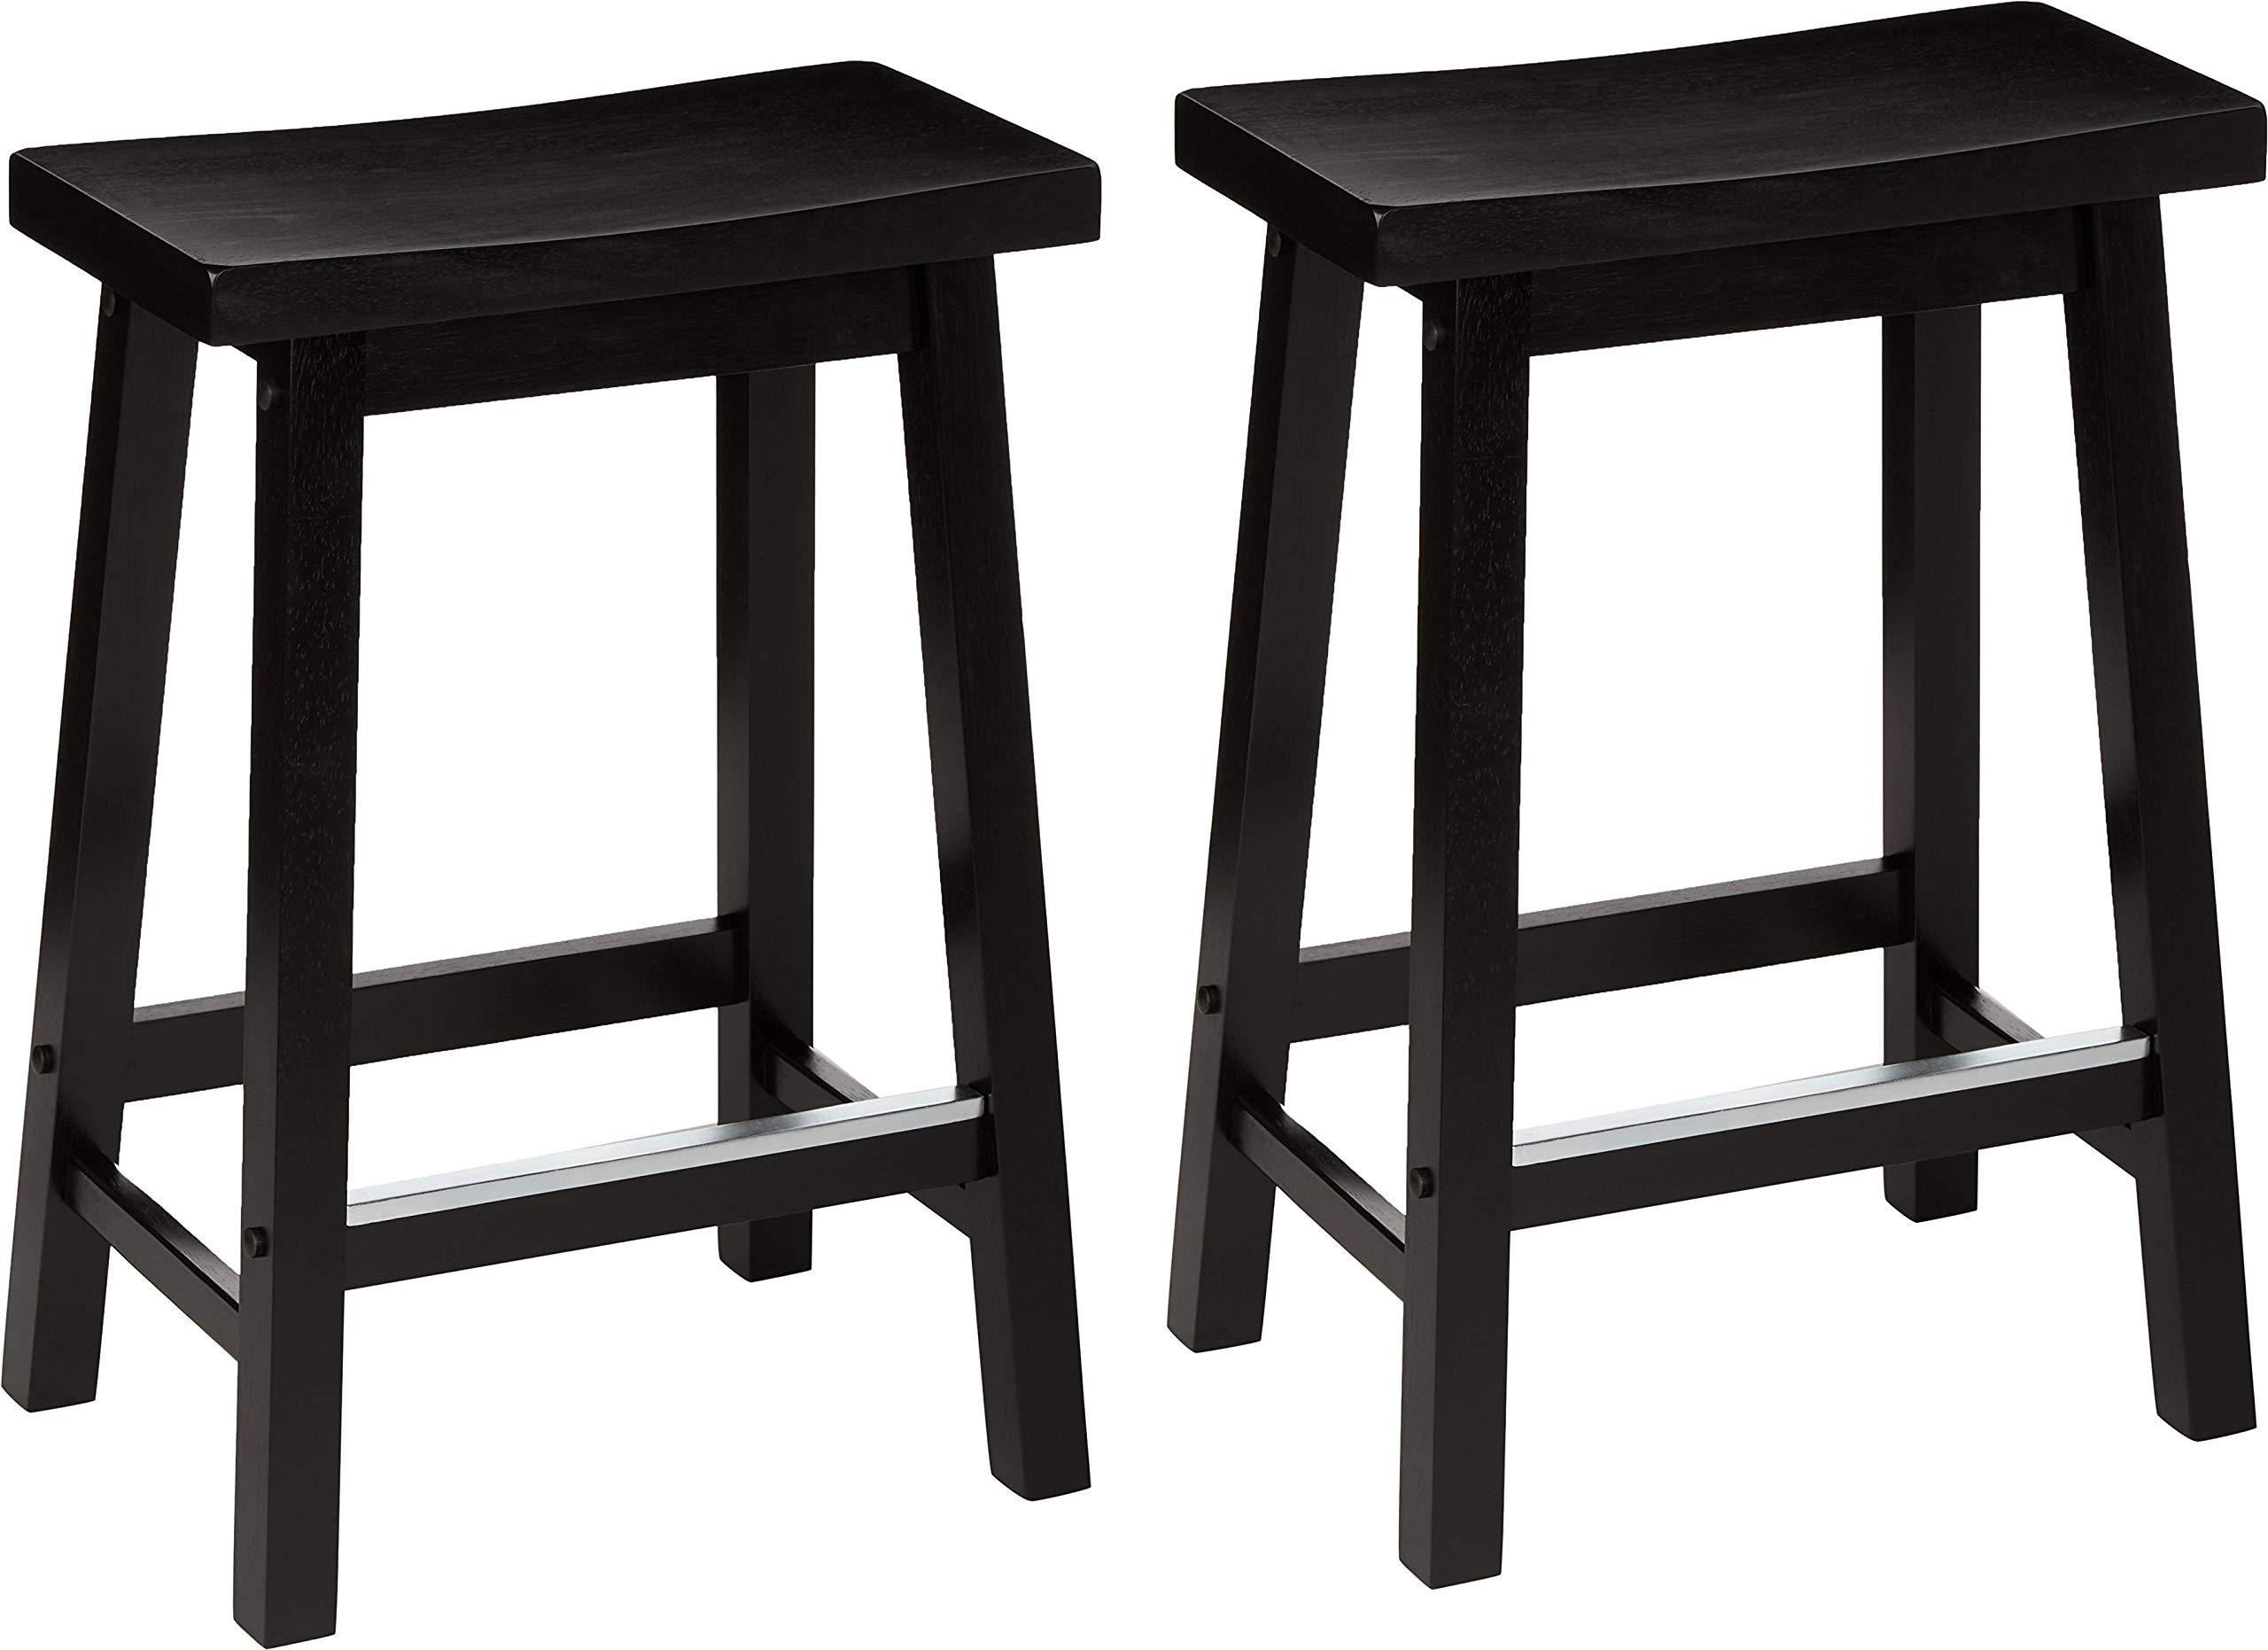 AmazonBasics Classic Solid Wood Saddle-Seat Kitchen Counter Stool with Foot Plate 24 Inch, Black, Set of 2 by AmazonBasics